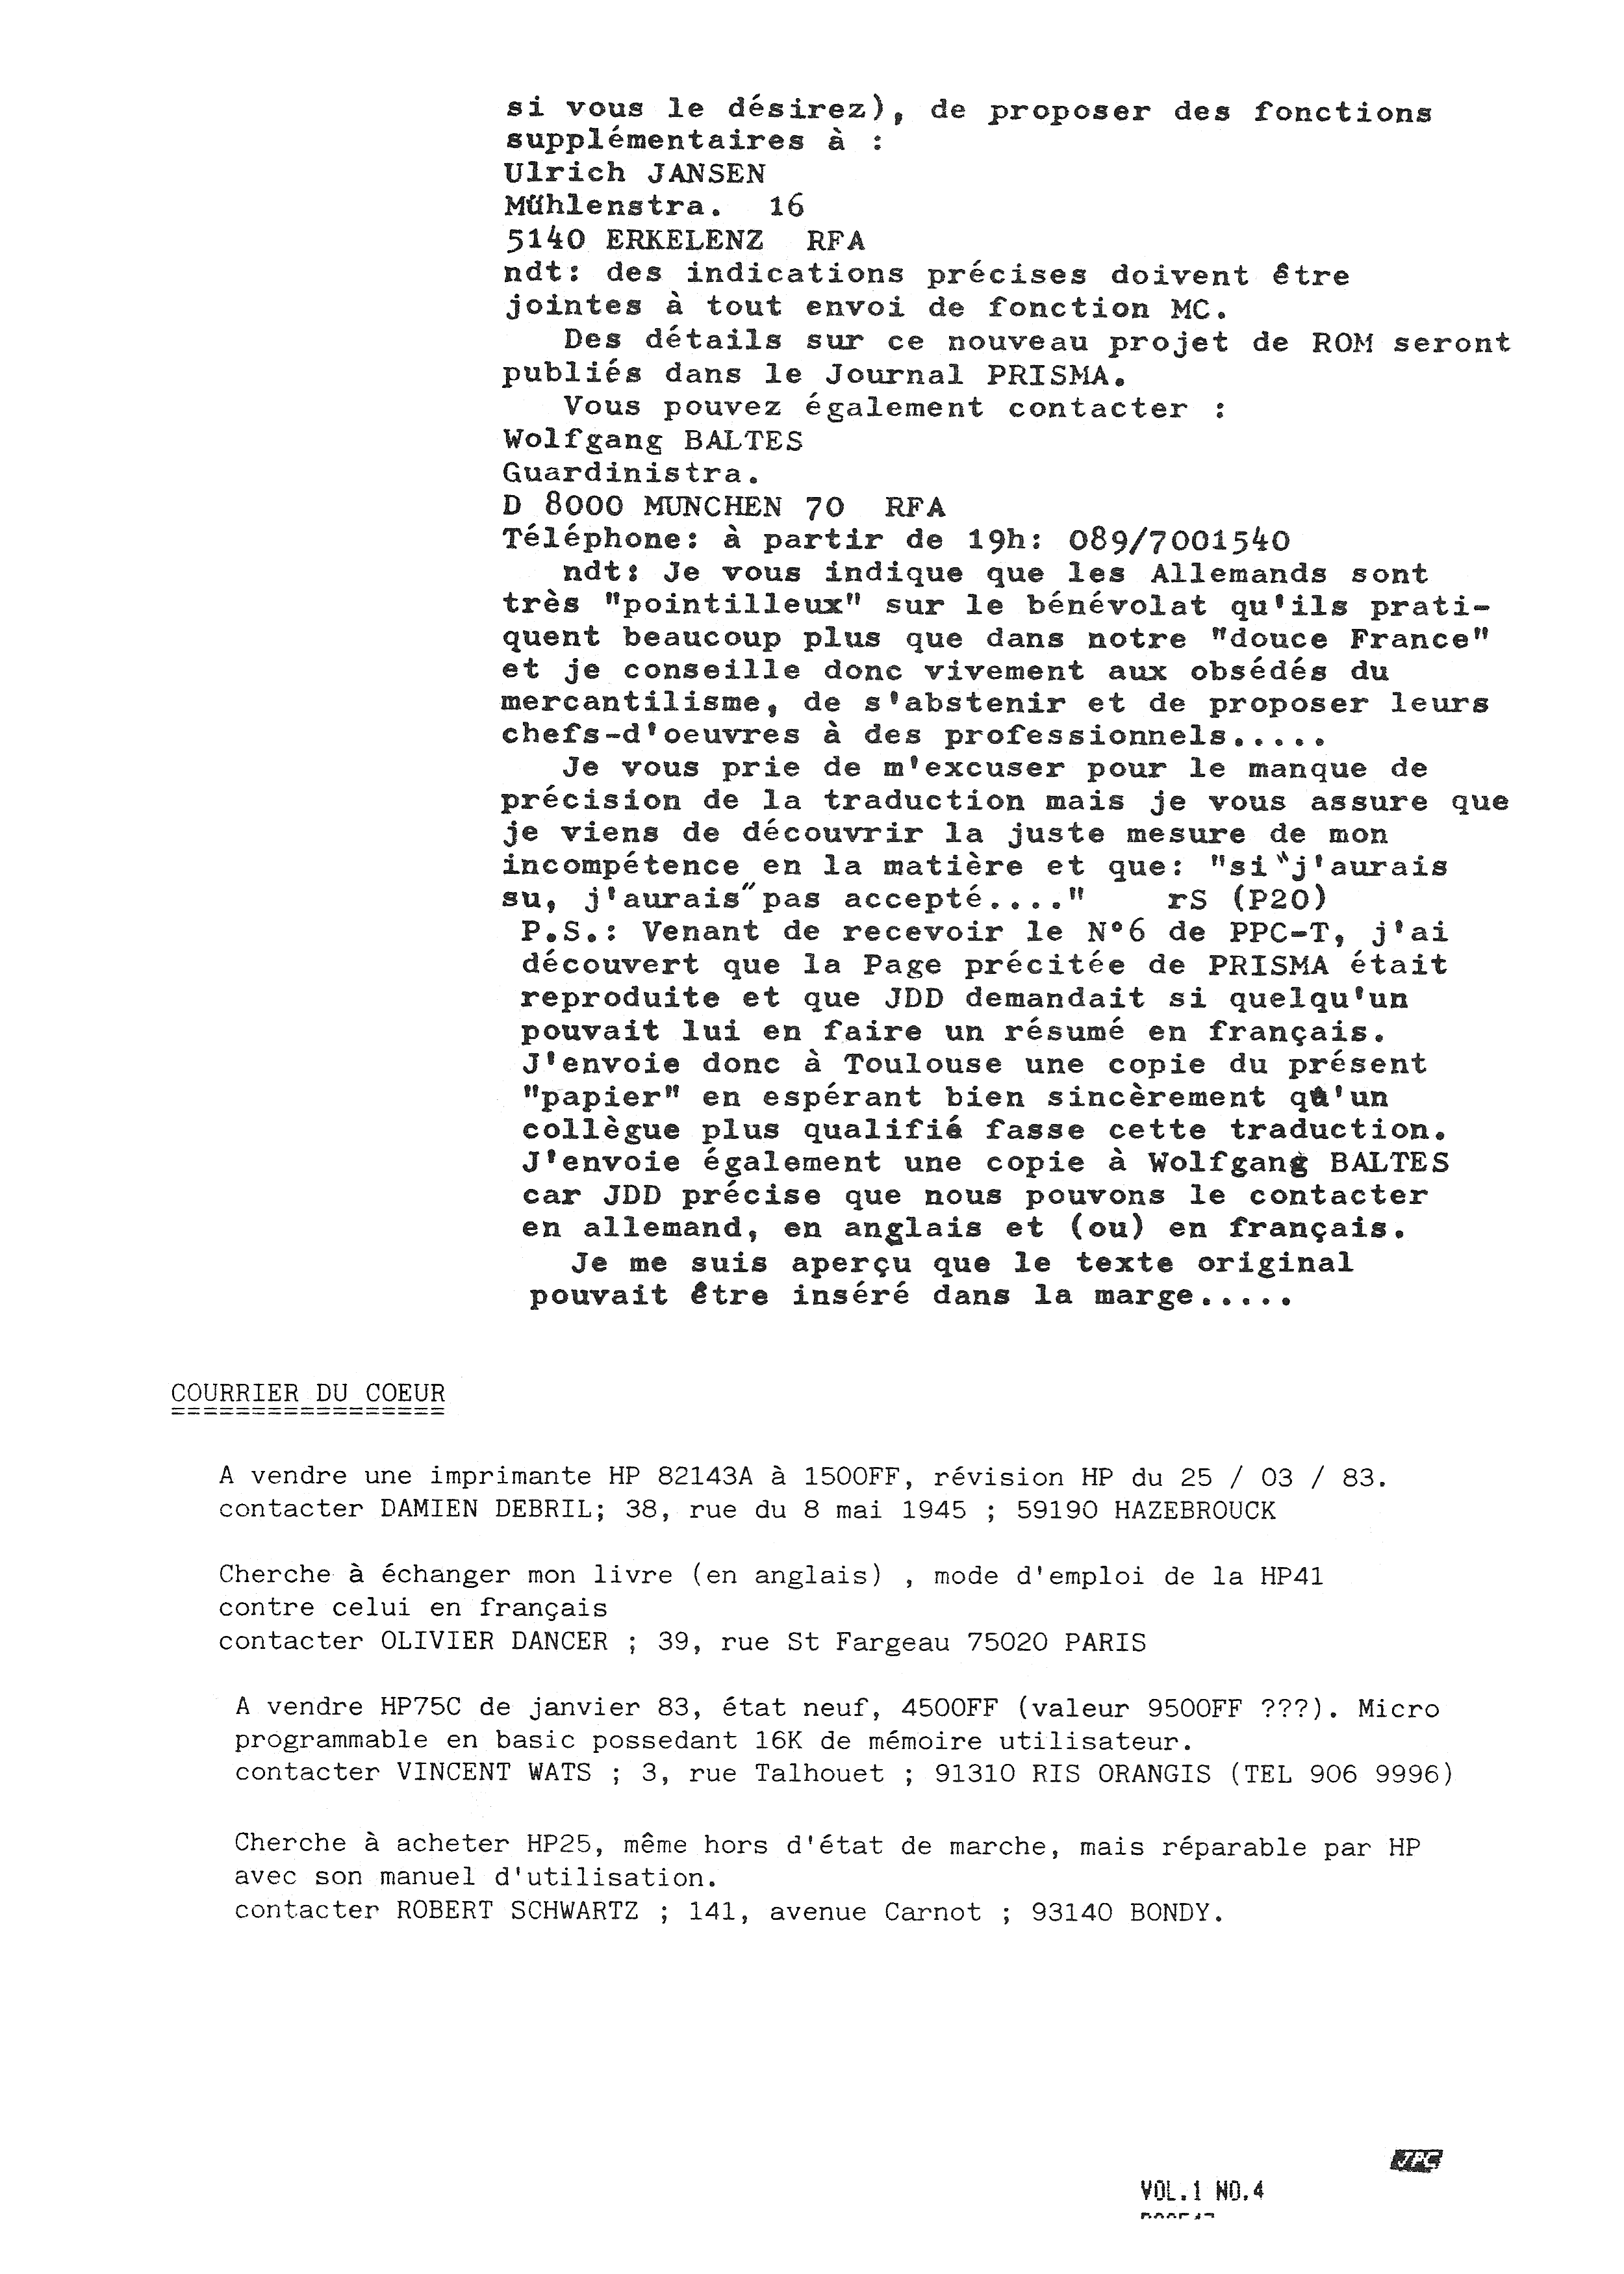 Jp-4-page-47-1000